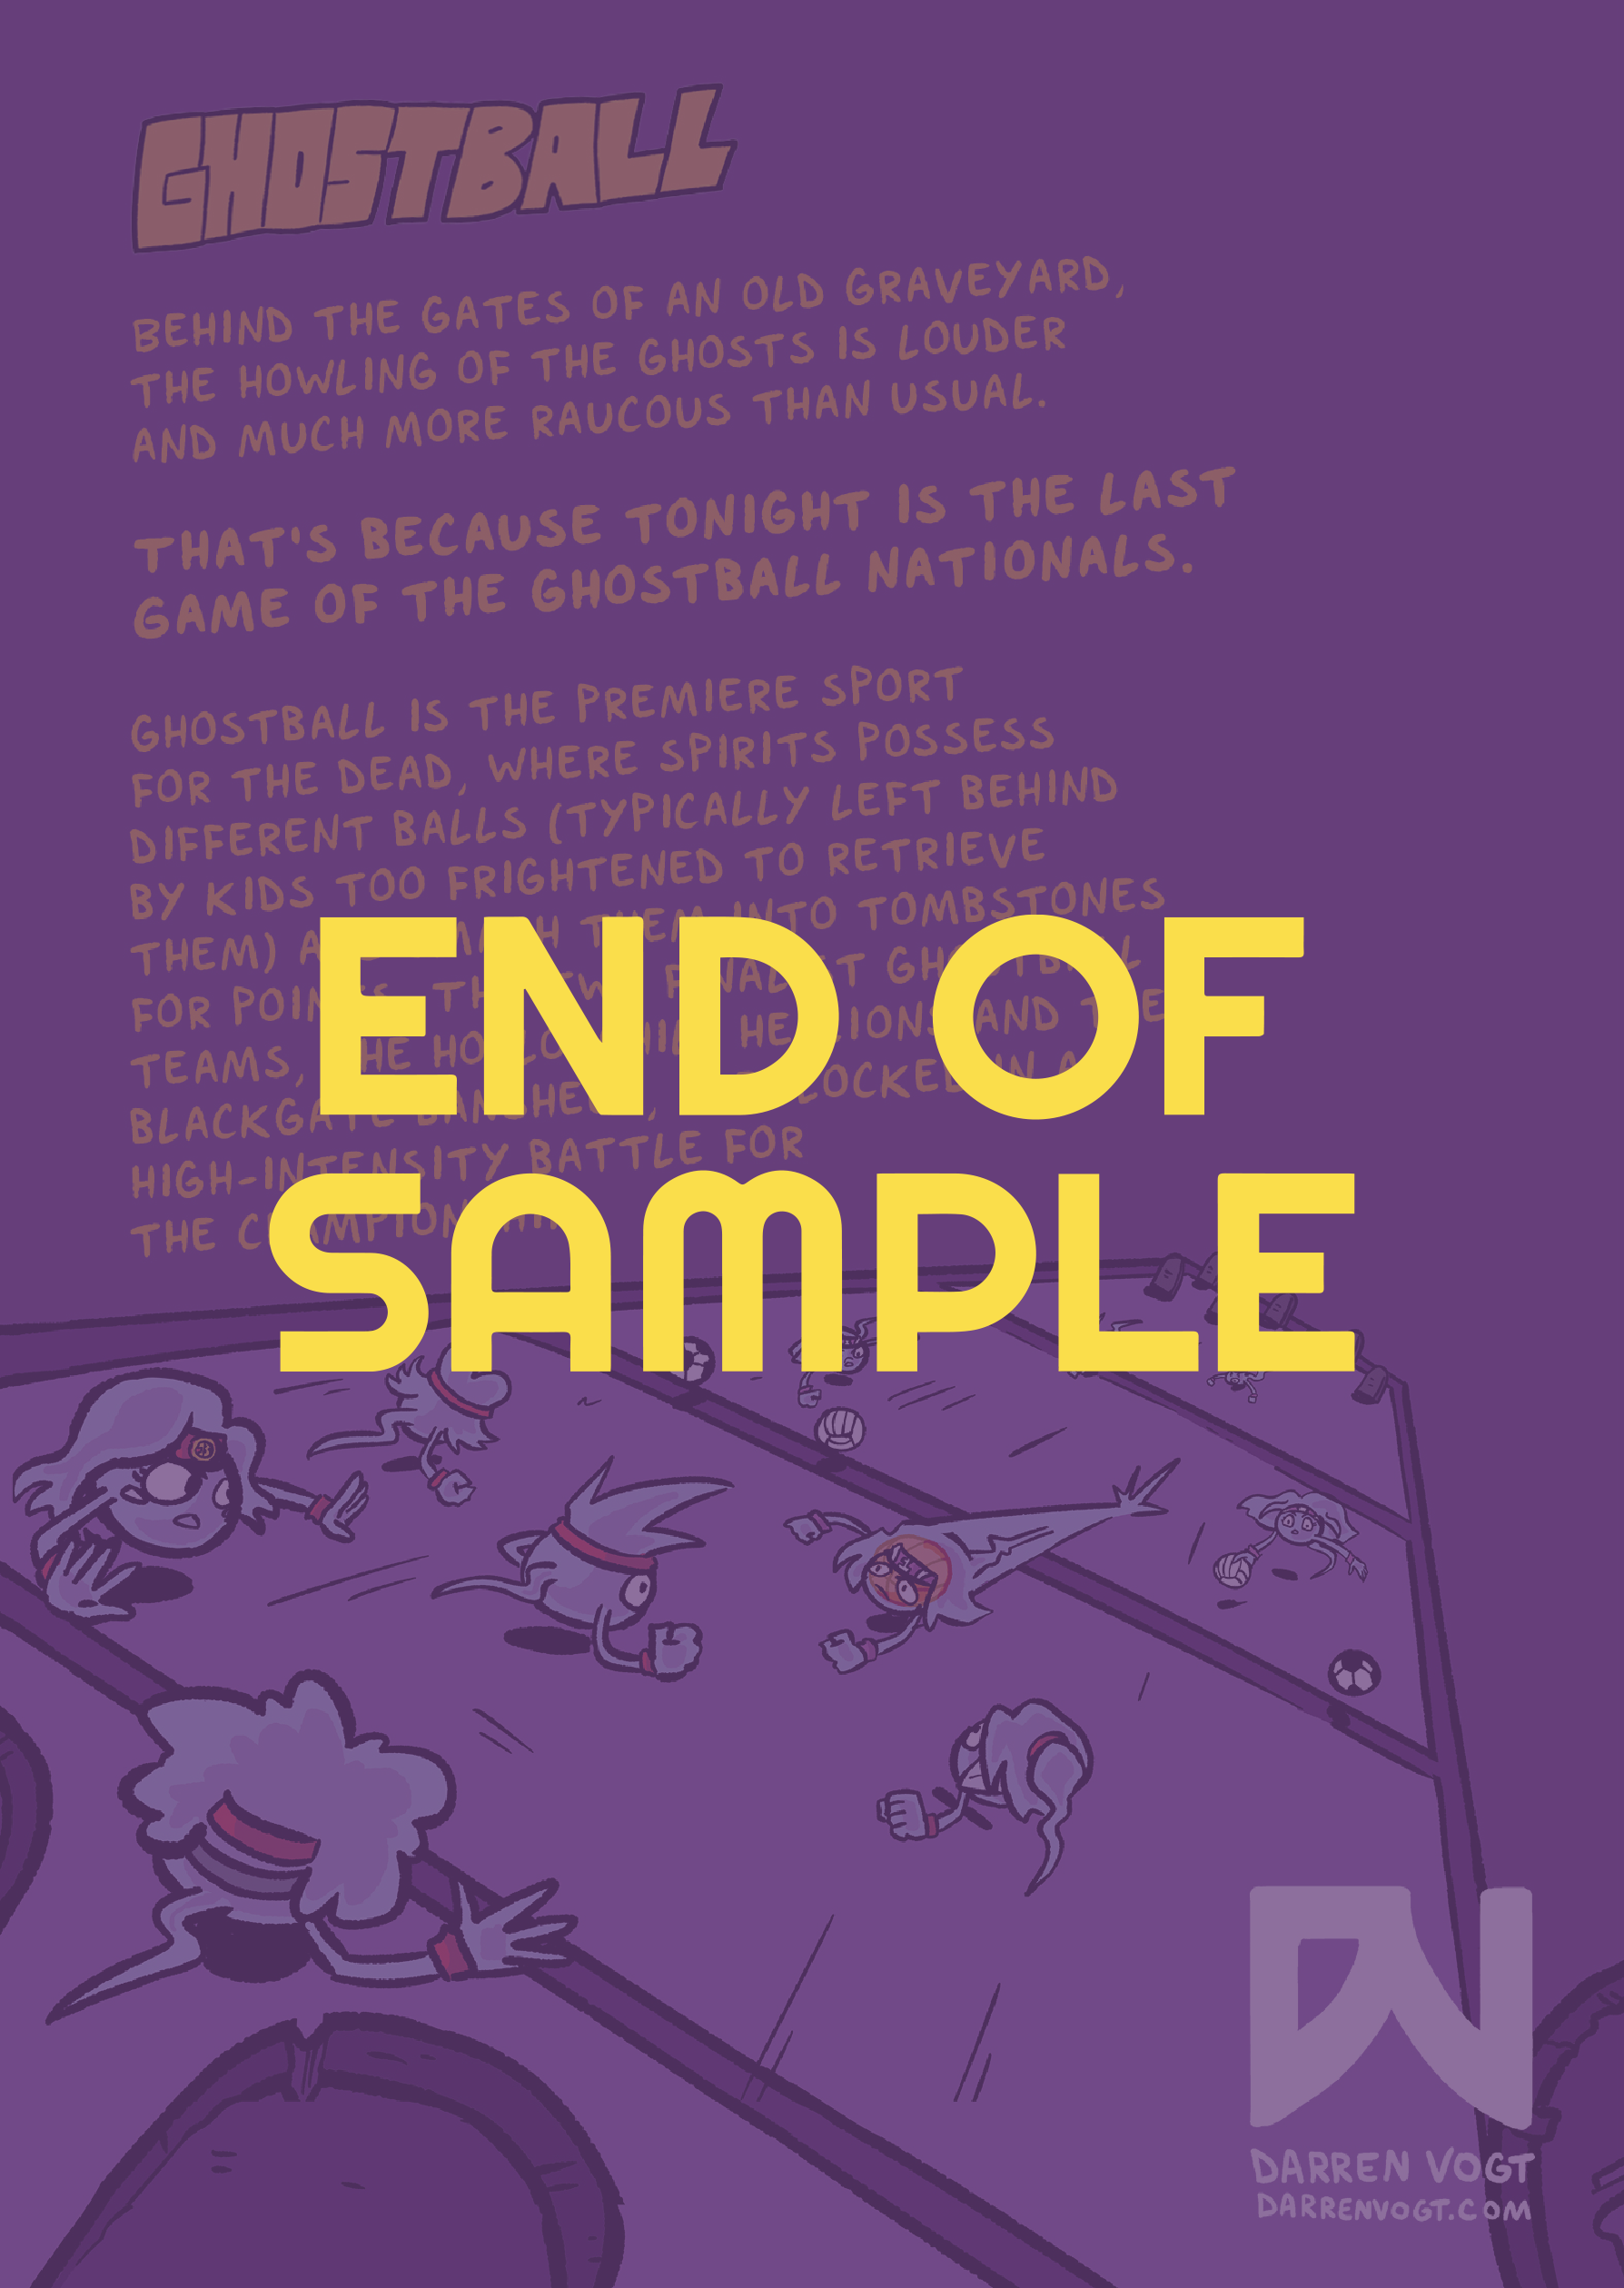 Ghostball-Cover-back-endofsample